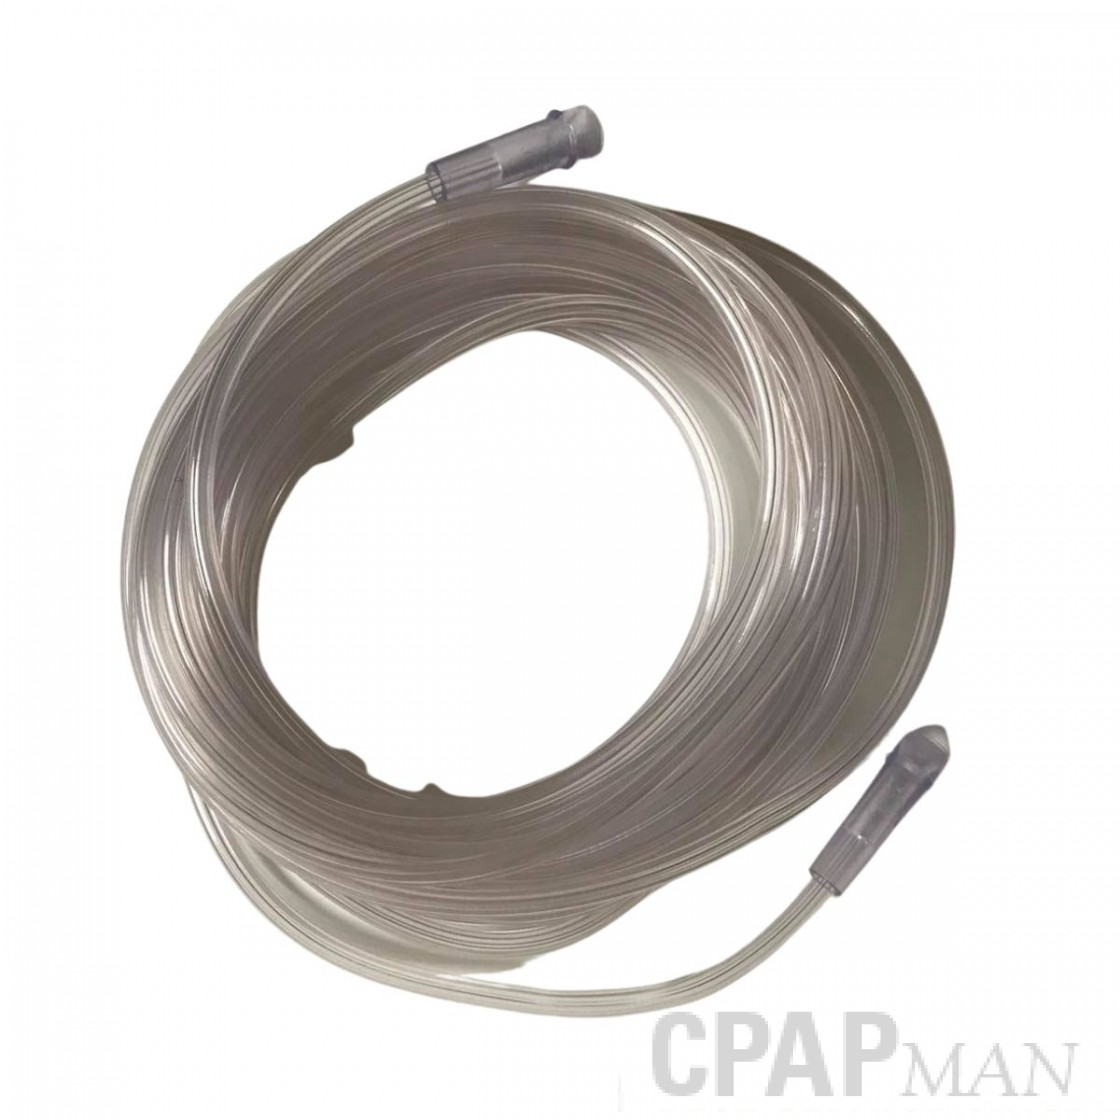 Oxygen Supply Tubing 25 ft - Sunset Healthcare